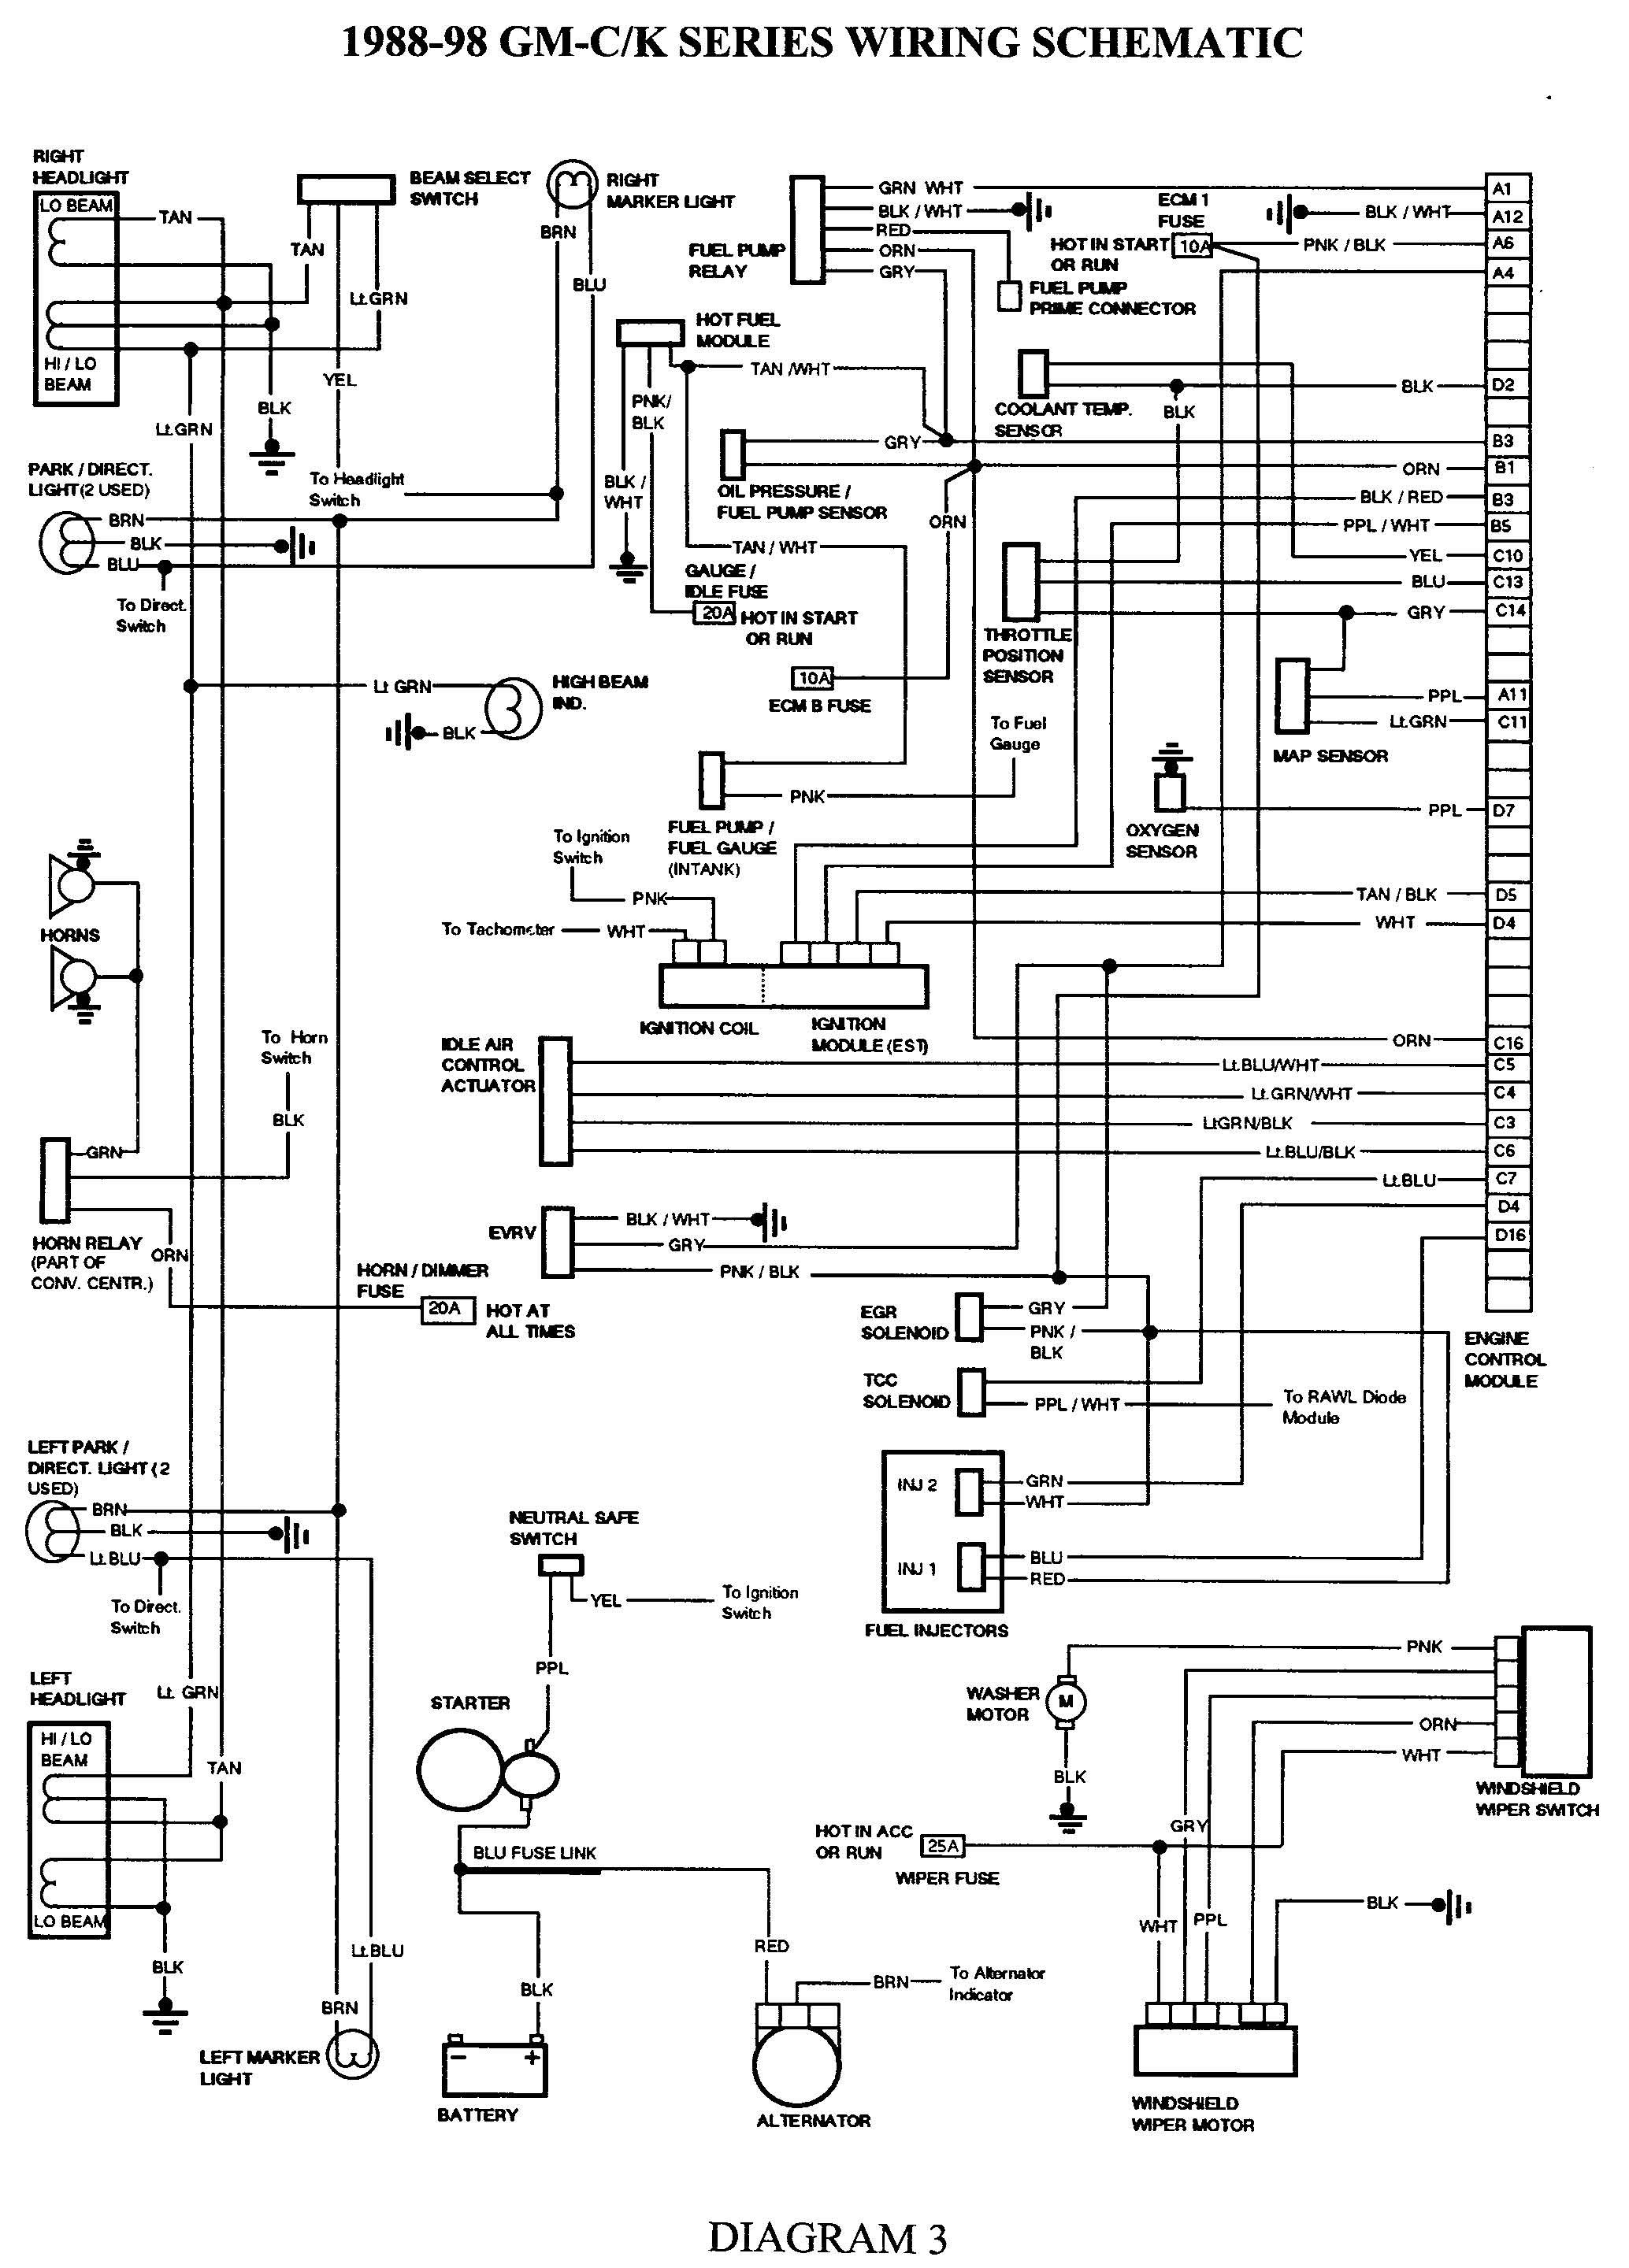 Pin on kc | 1990 Gm Truck Ignition Wiring Diagram |  | Pinterest